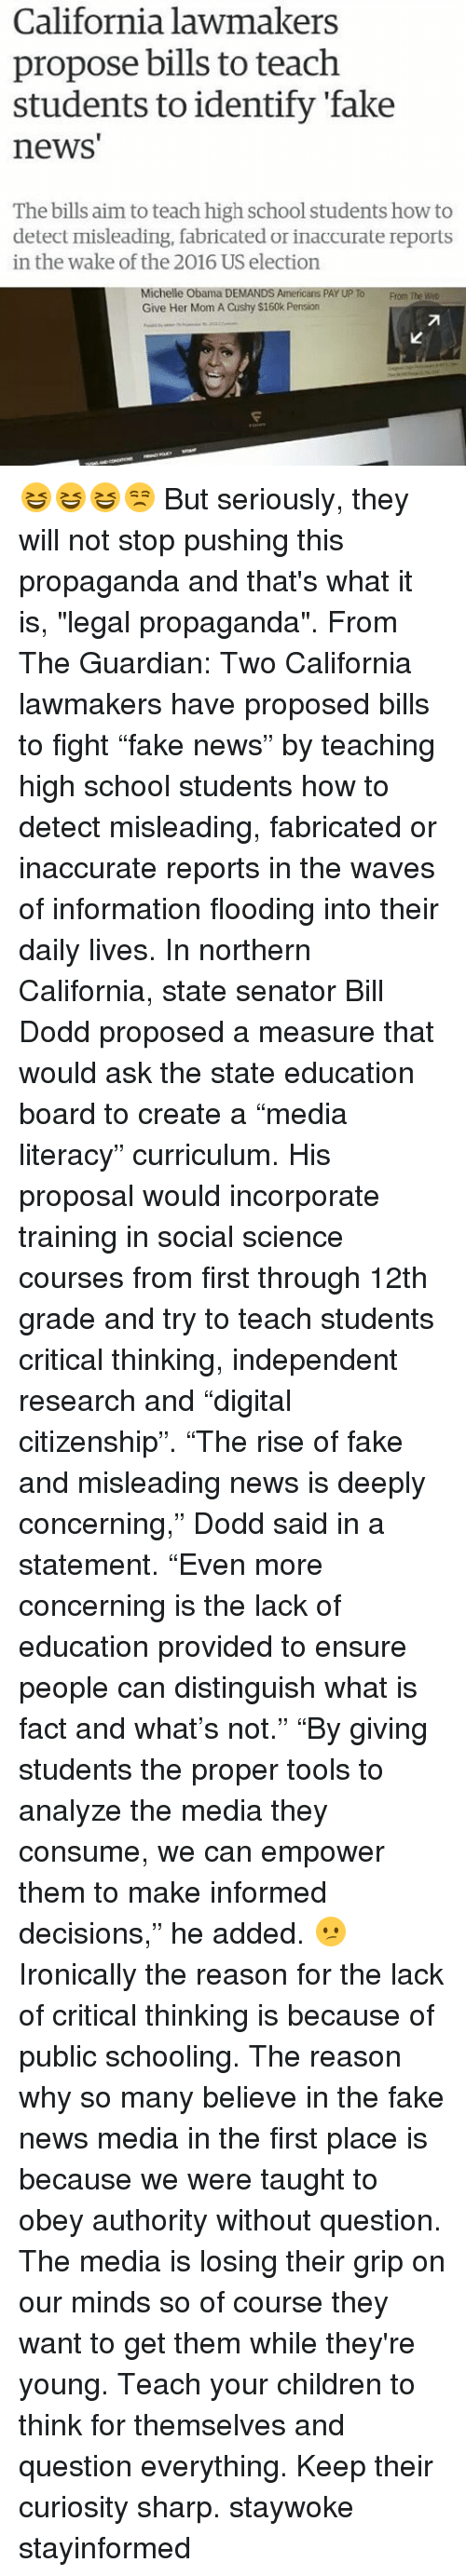 california-lawmakers-propose-bills-to-teach-students-to-identify-fake -11810512.png 436eb89c6